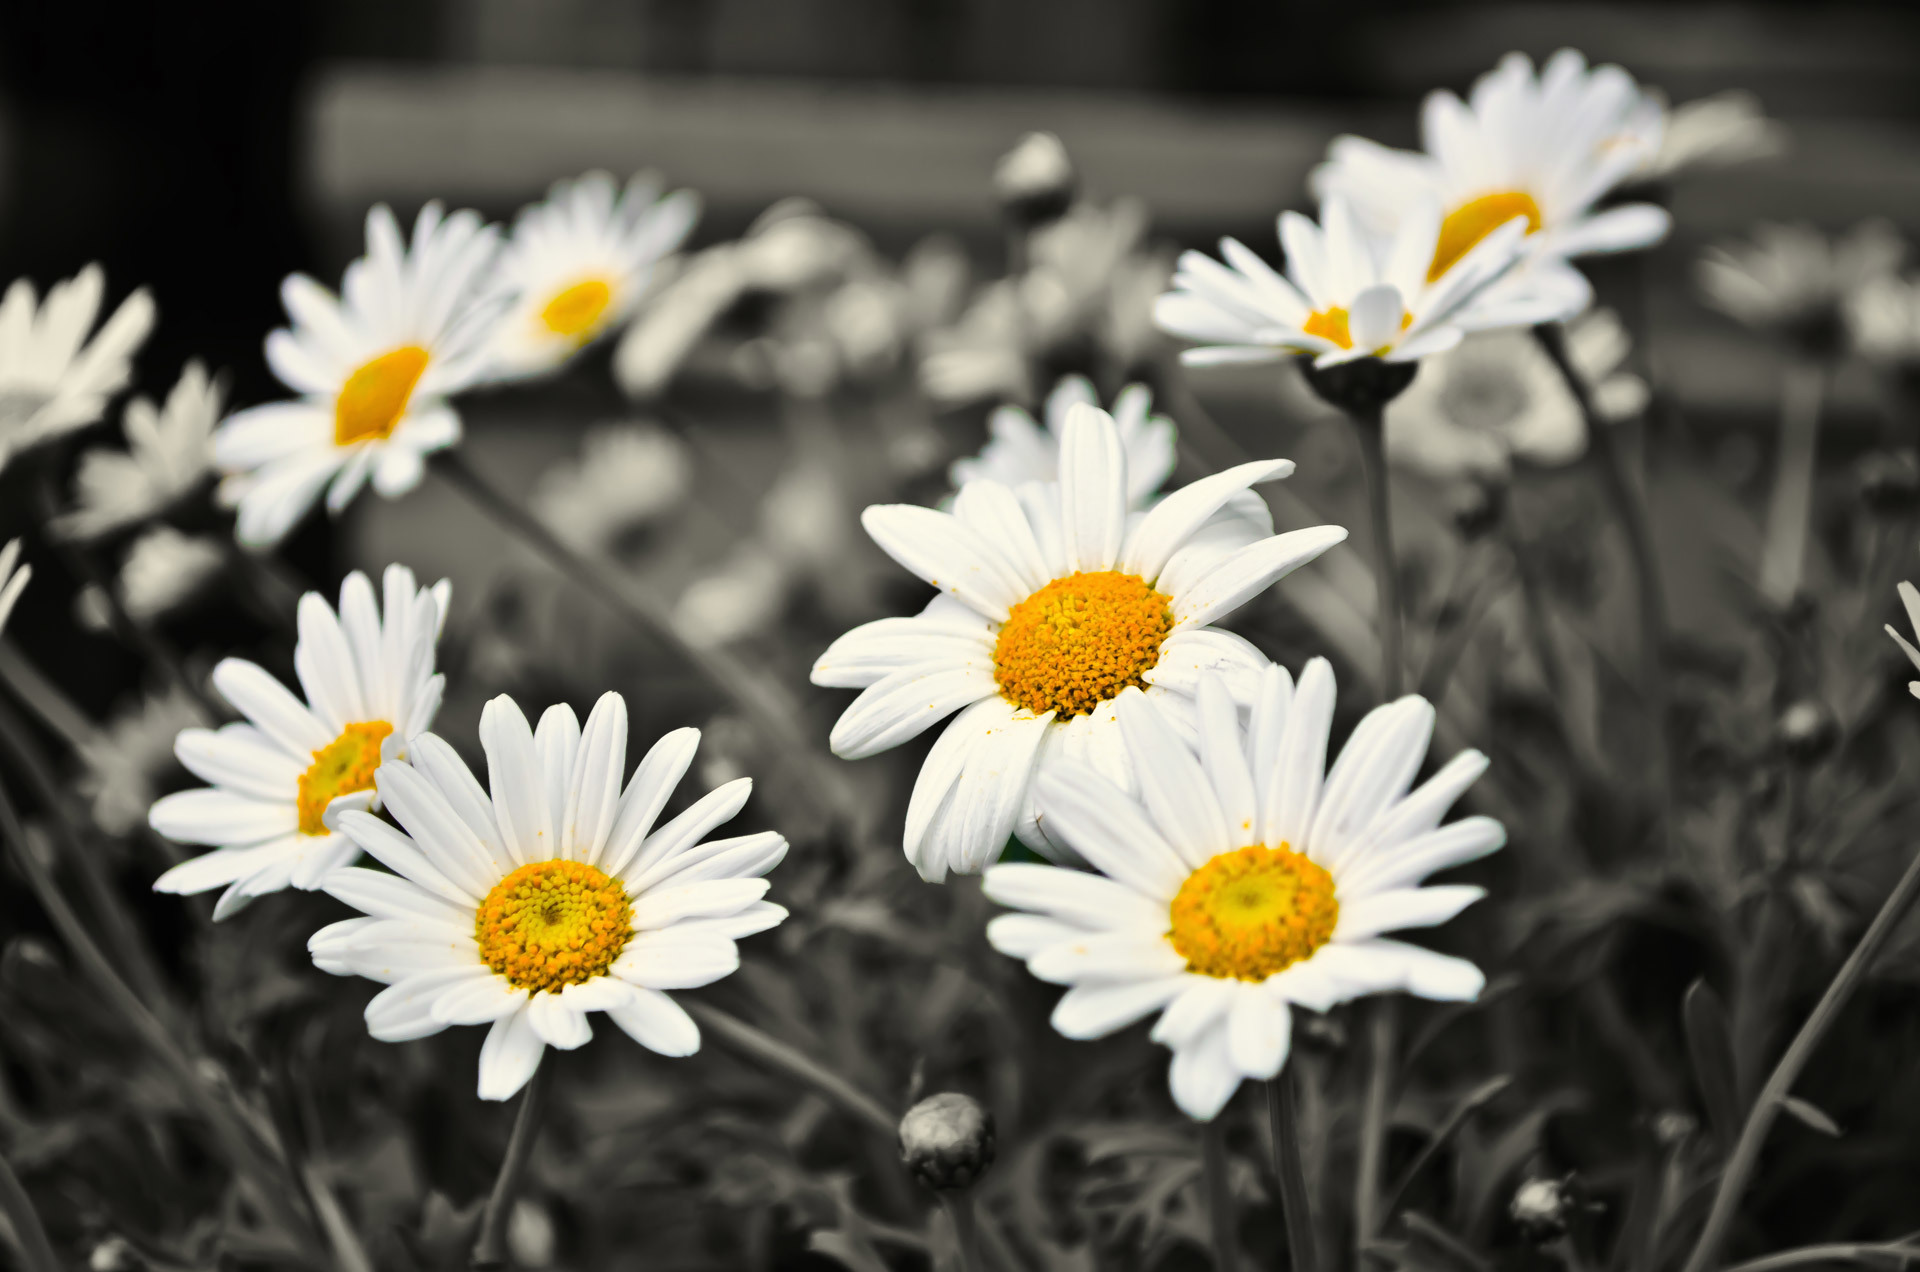 The Dress: Science Explains the Blue, Black, White and Black and white daisy photography